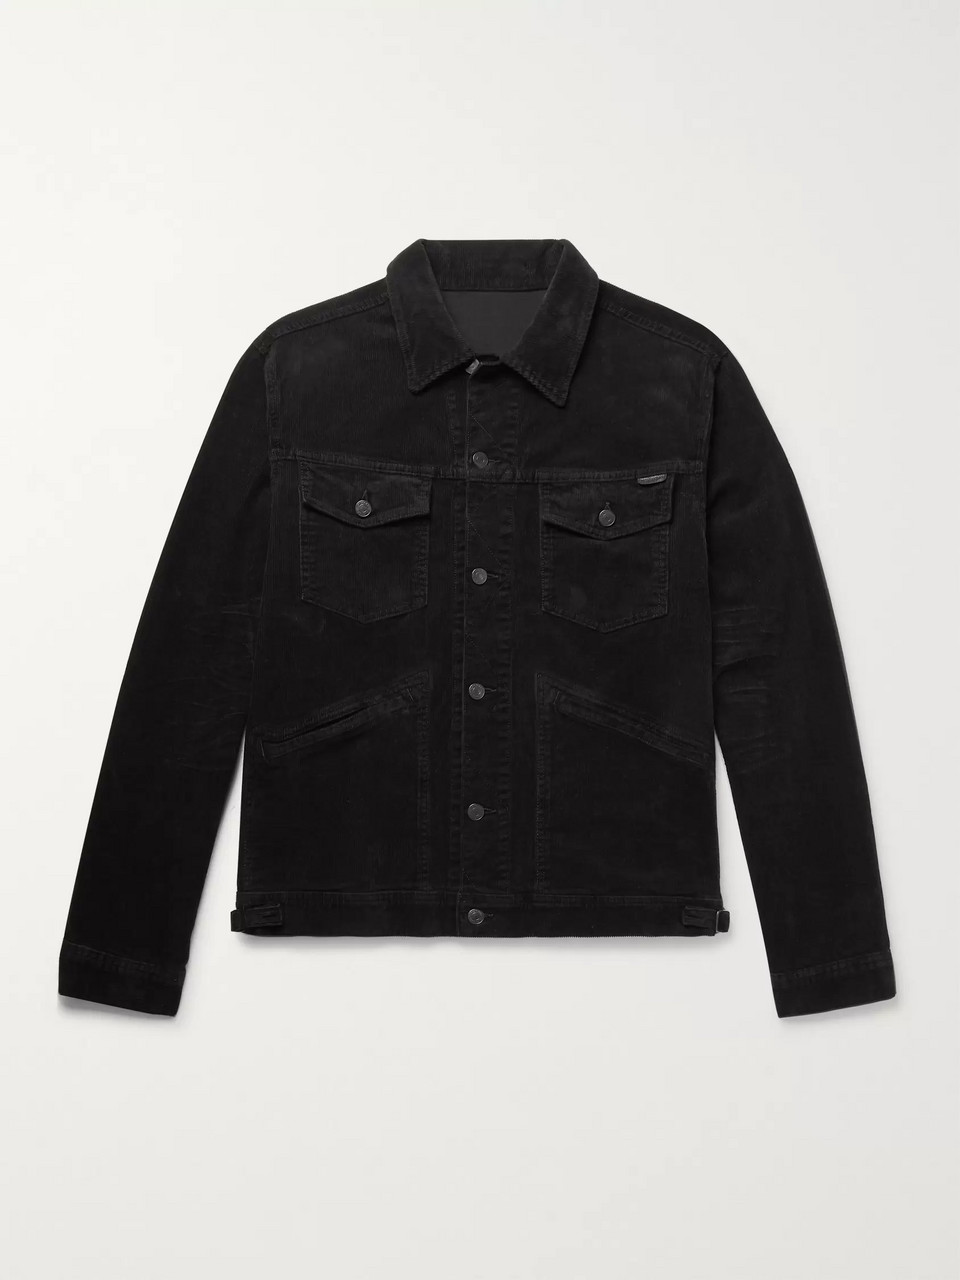 TOM FORD Washed Cotton-Blend Corduroy Trucker Jacket